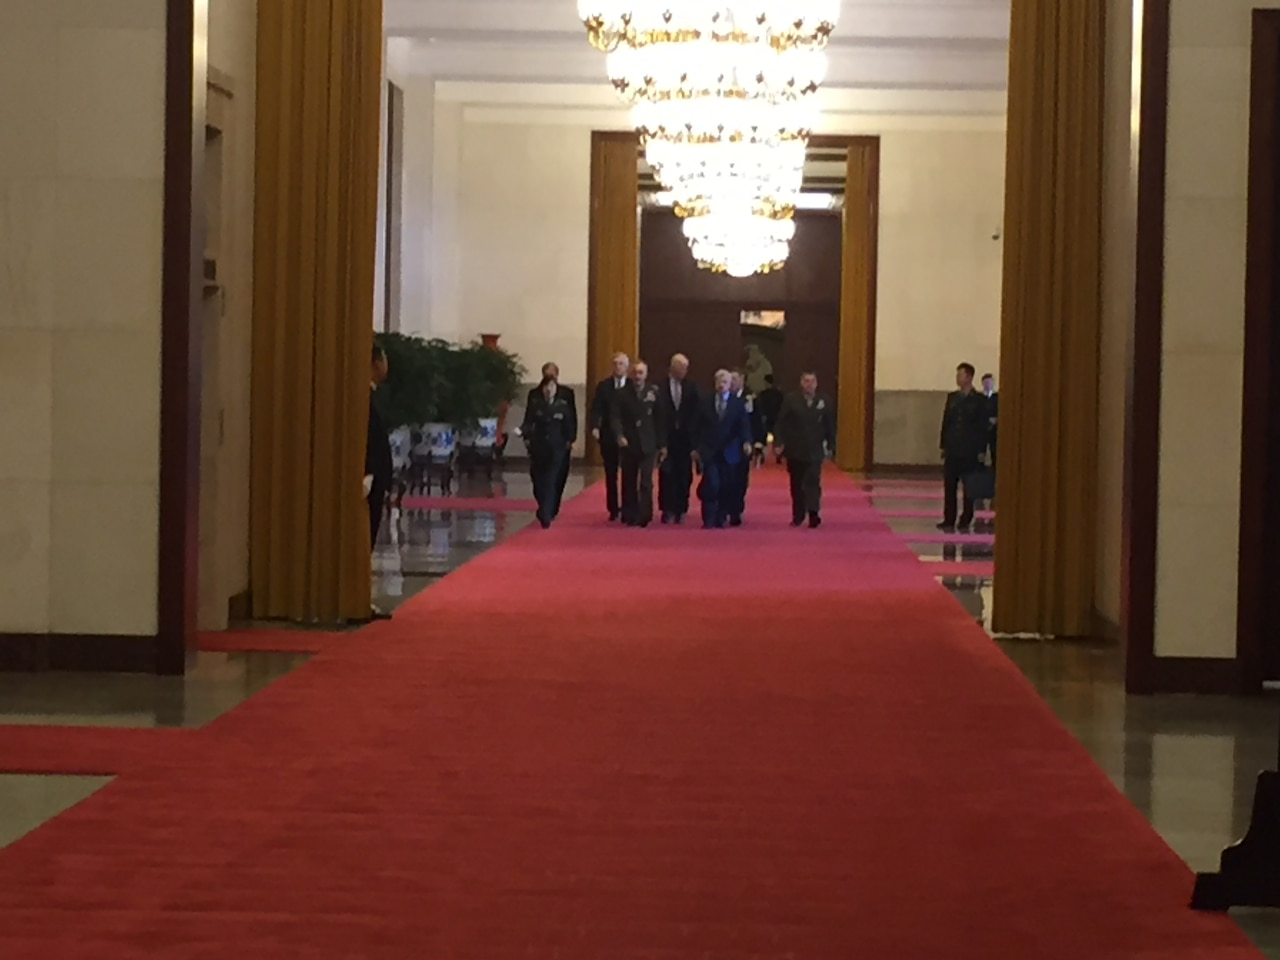 The chairman of the Joint Chiefs of Staff, walks with his team through the Great Hall of the People in Beijing.